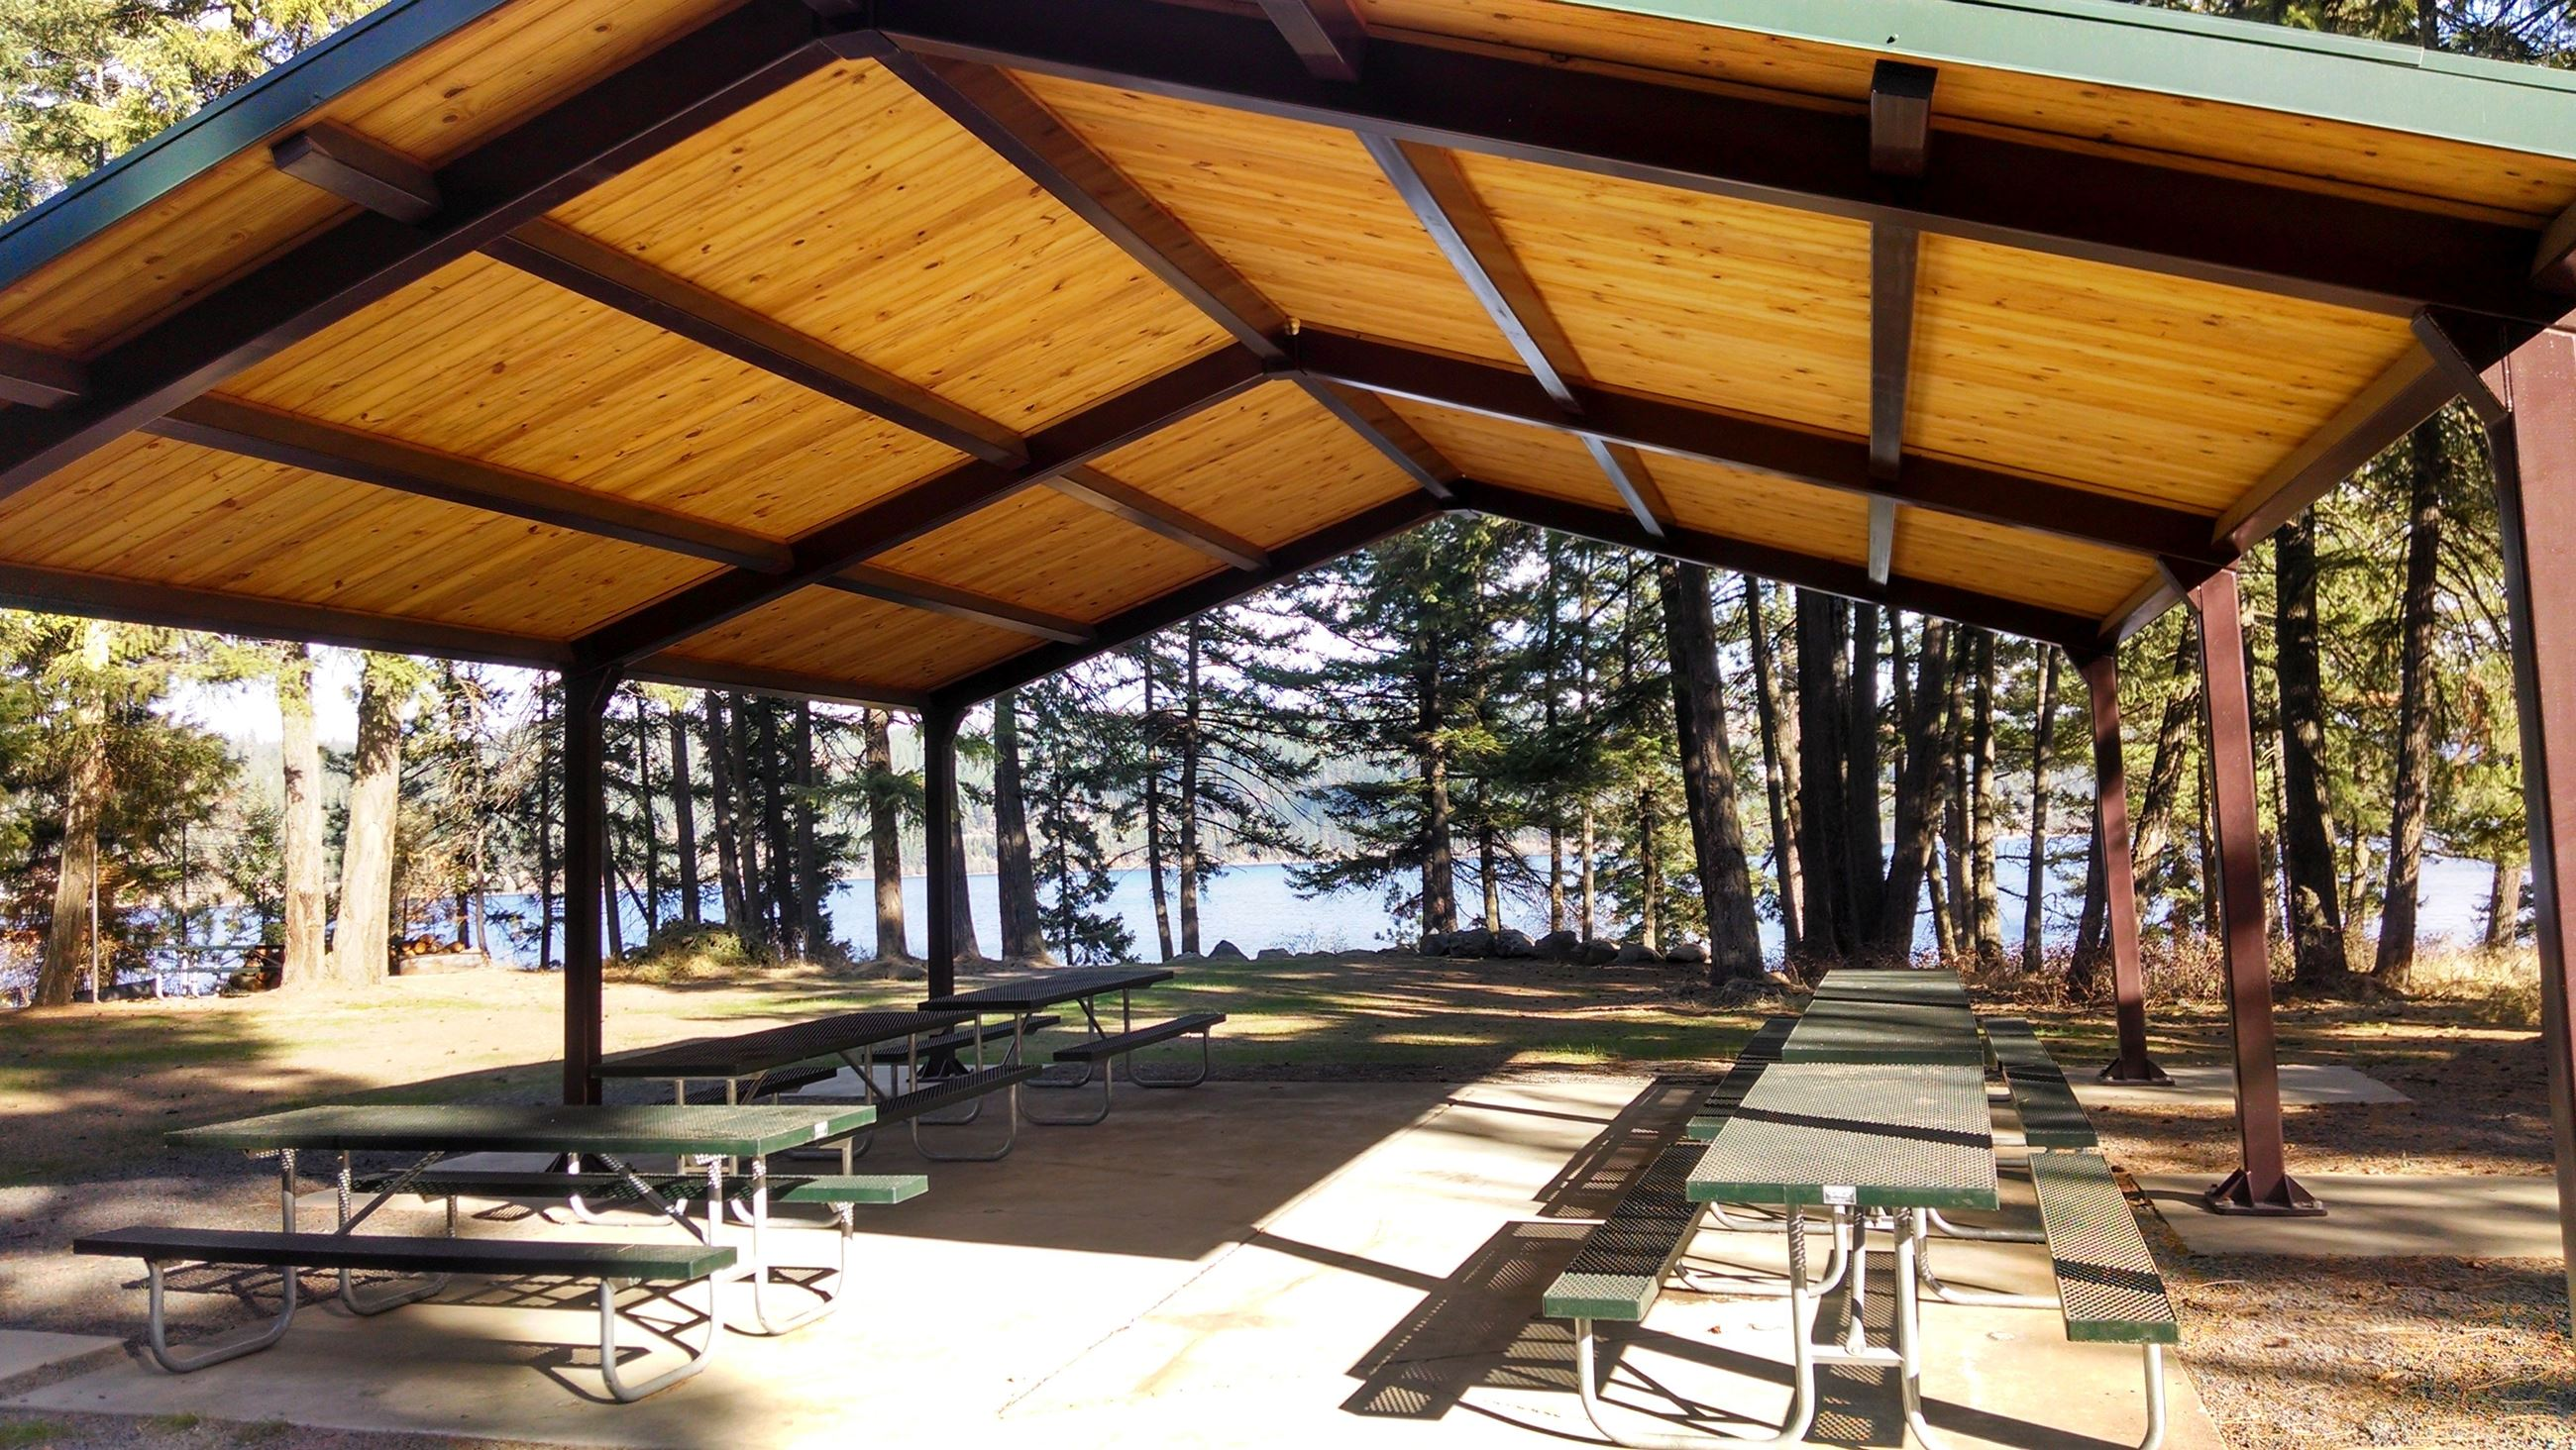 Roofed pavilion with picnic tables